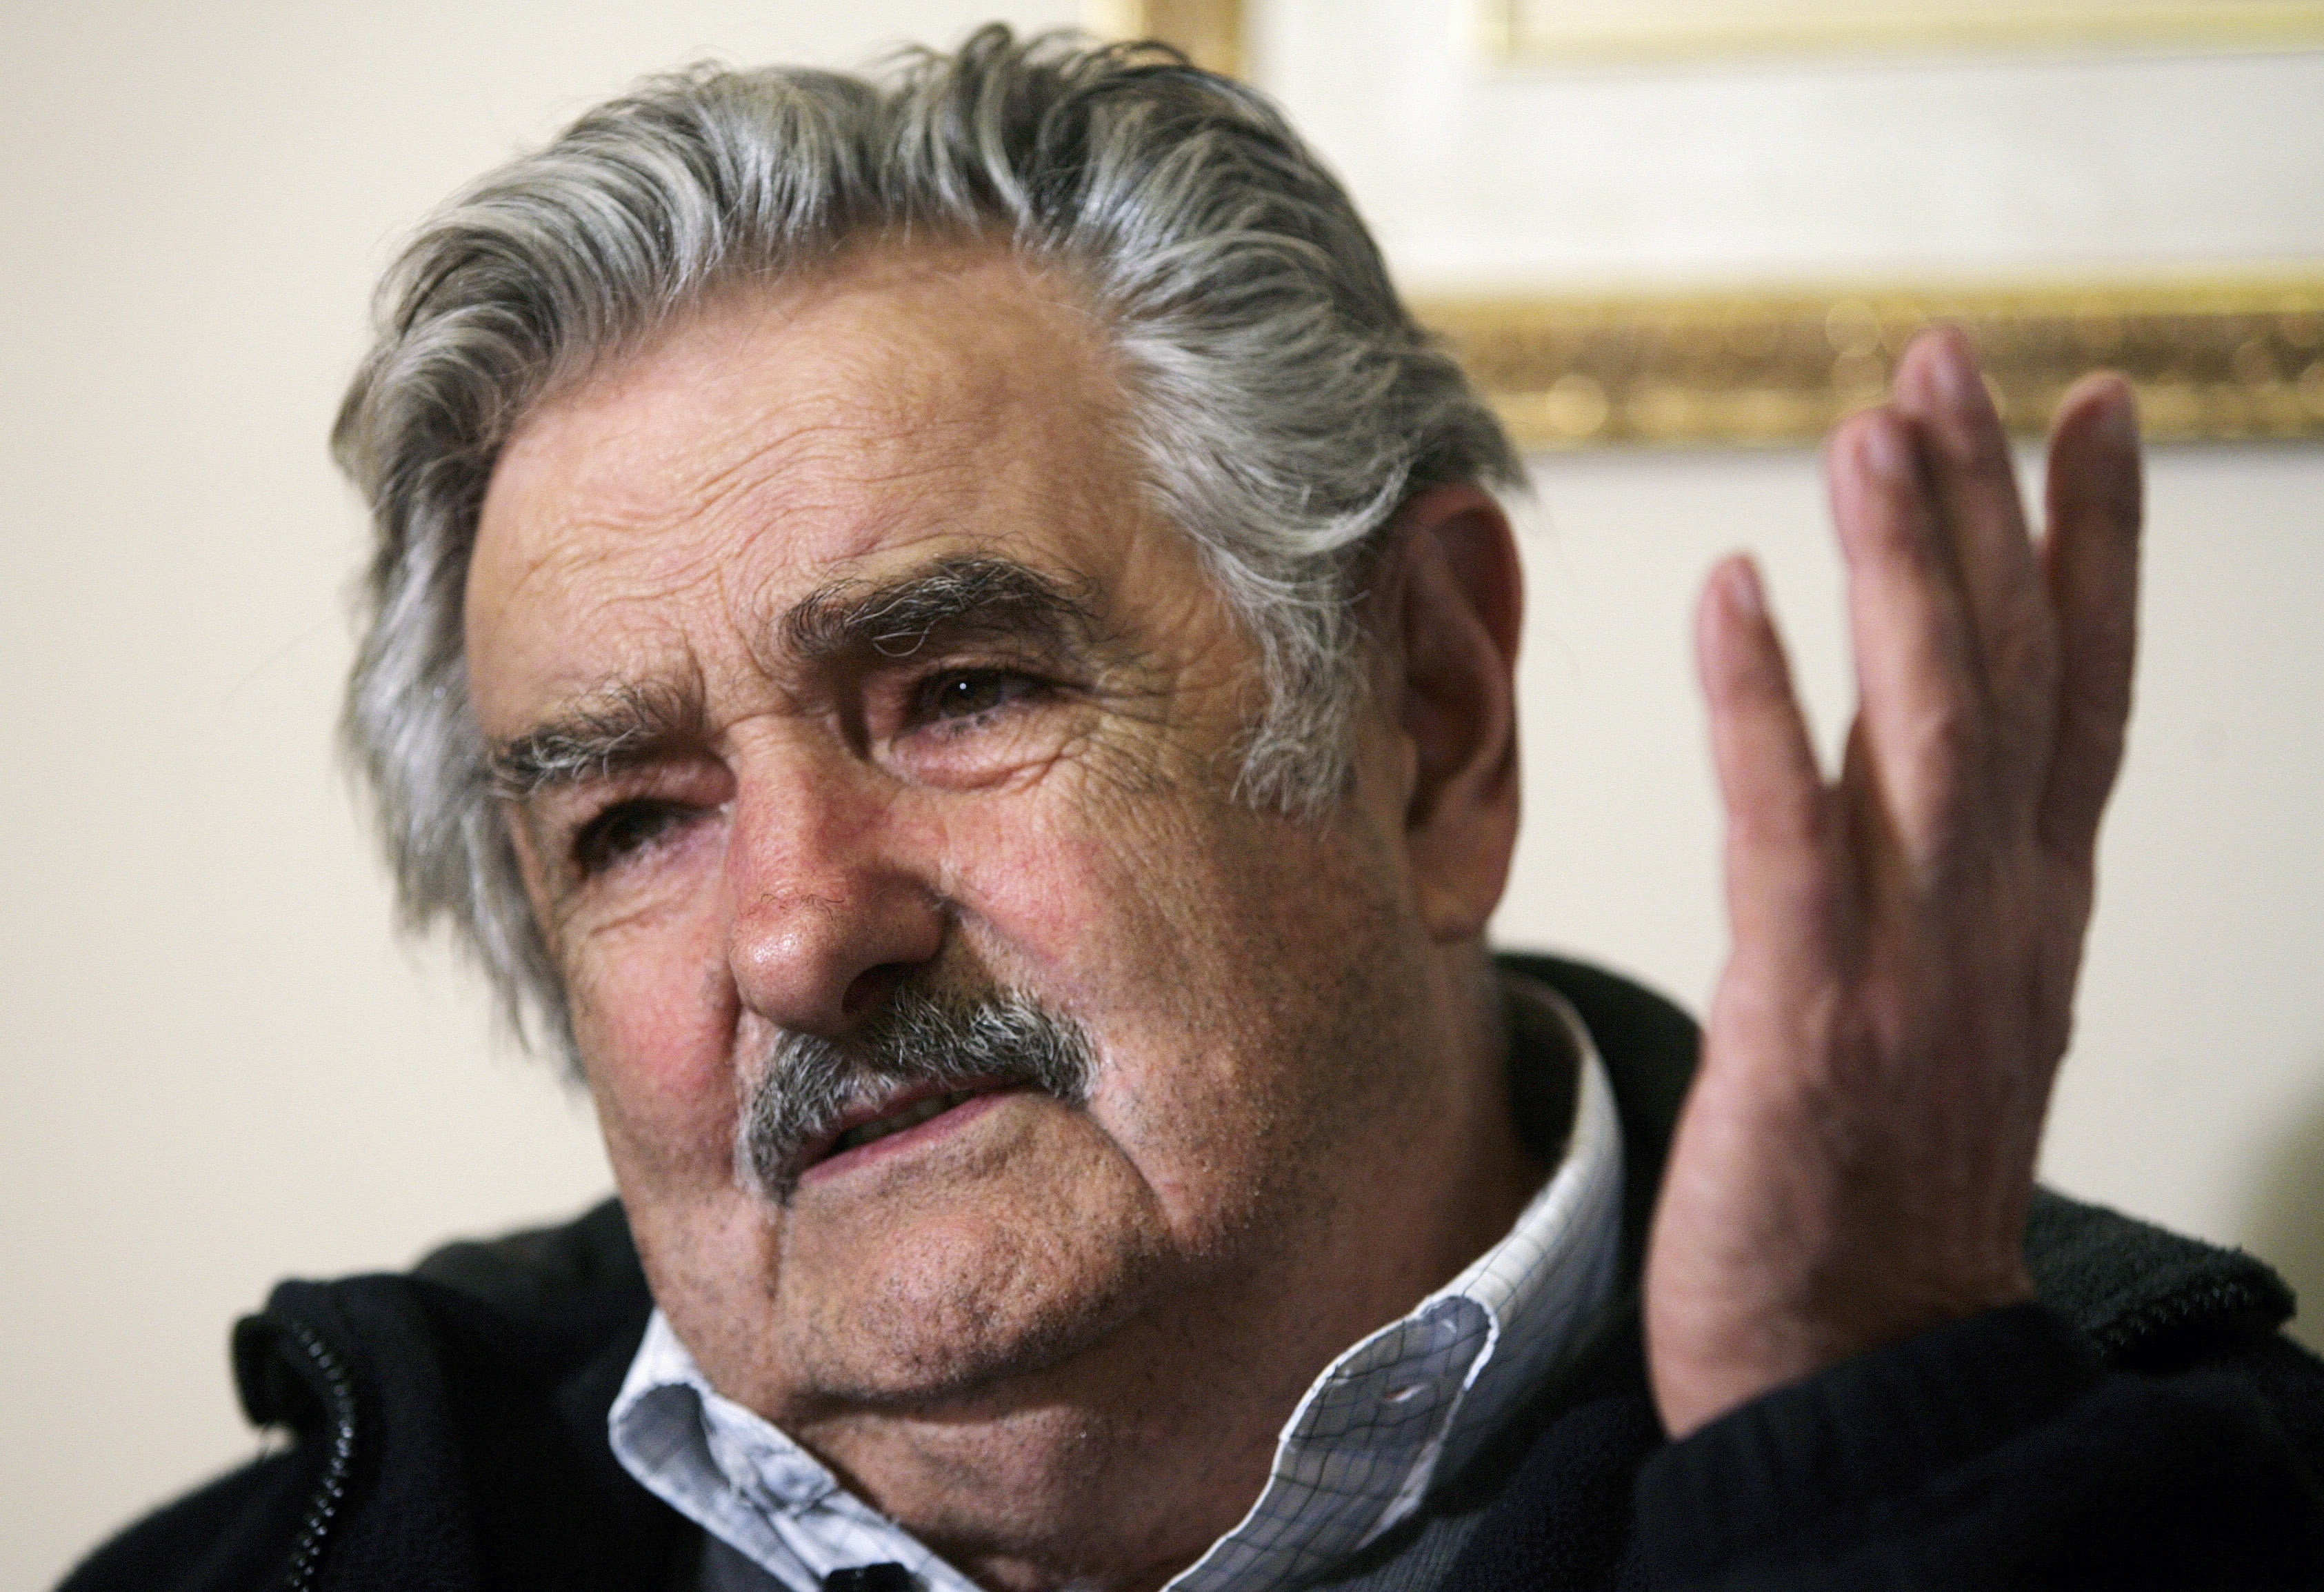 Former guerrilla leader and Uruguay's leading presidential candidate Jose Mujica gestures during a Reuters interview in Montevideo